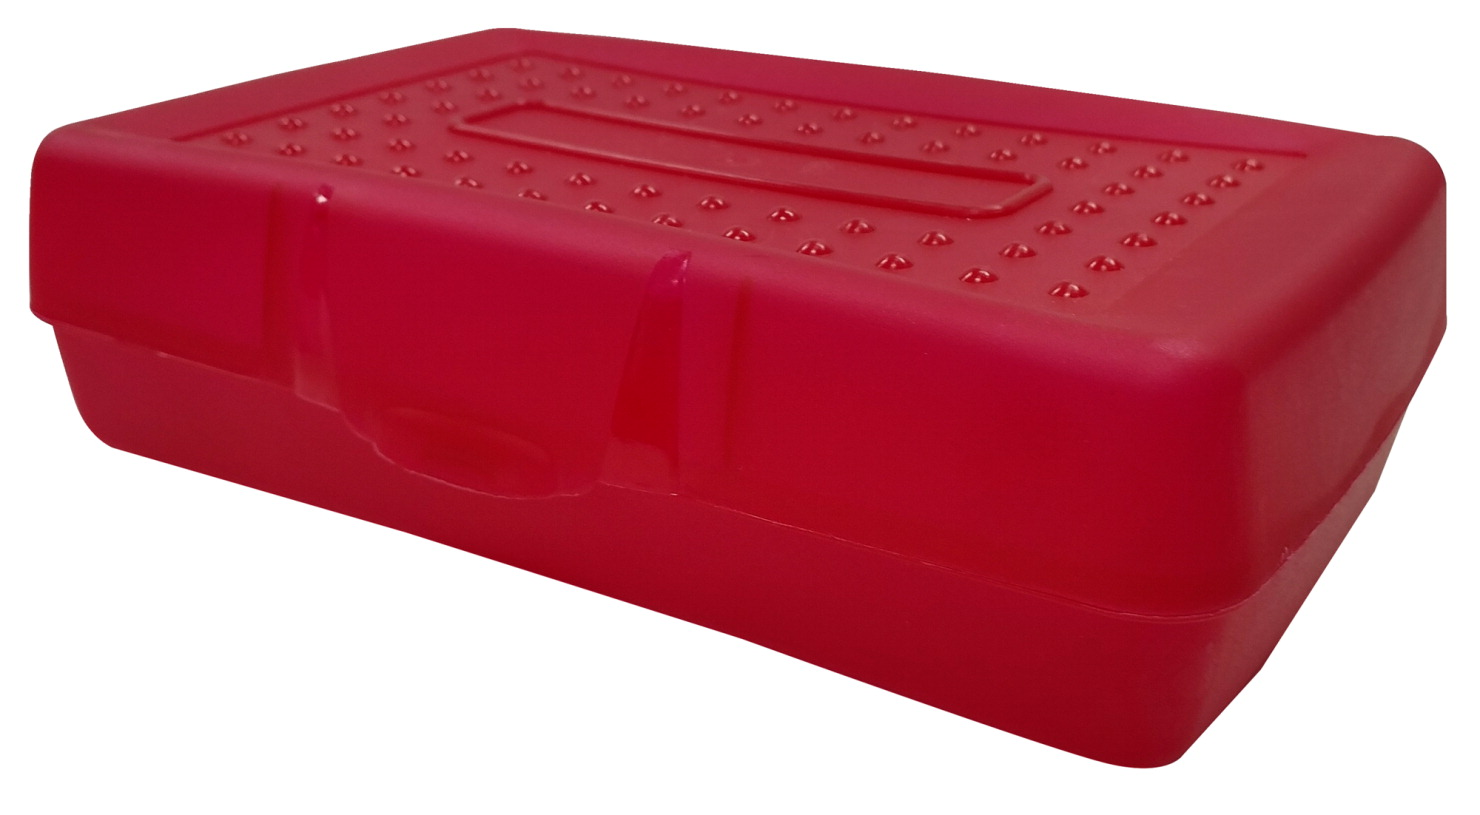 School Smart Plastic Pencil Box, Red Tint - SCHOOL SPECIALTY MARKETPLACE